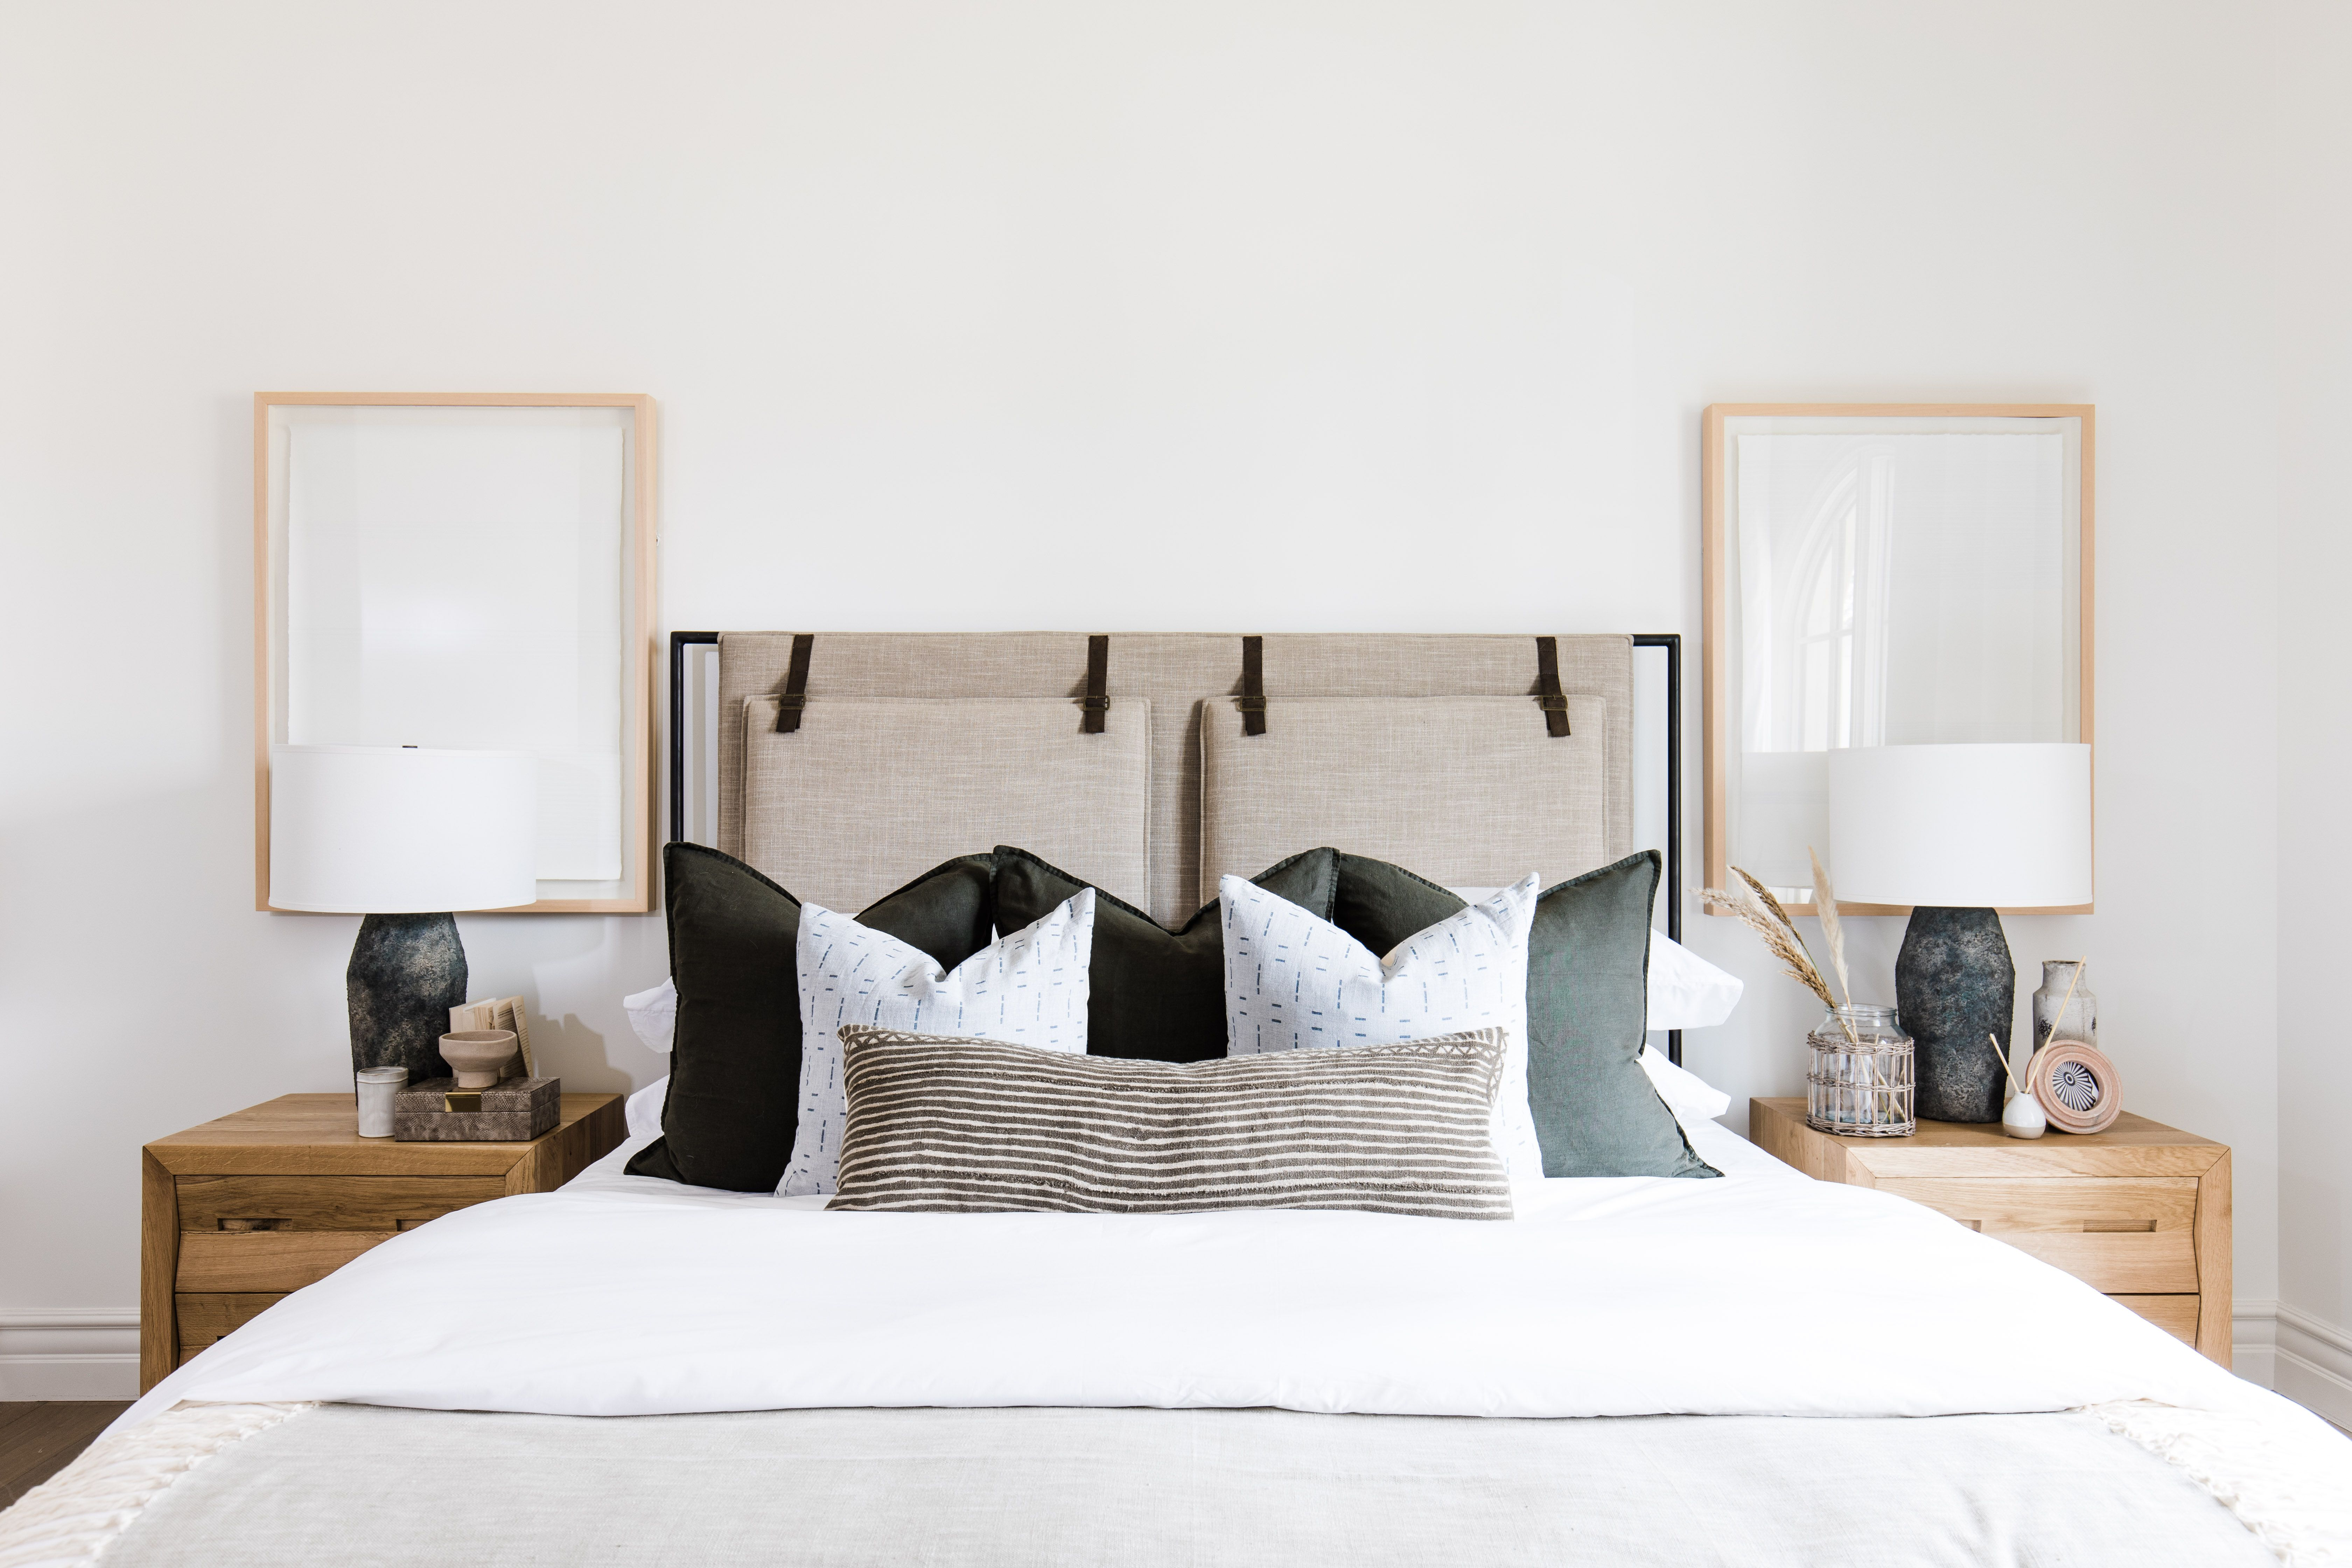 thelifestyledco partyhouseproj santa barbara inspired modern home in 2020 home projects bedroom inspirations guest bedrooms